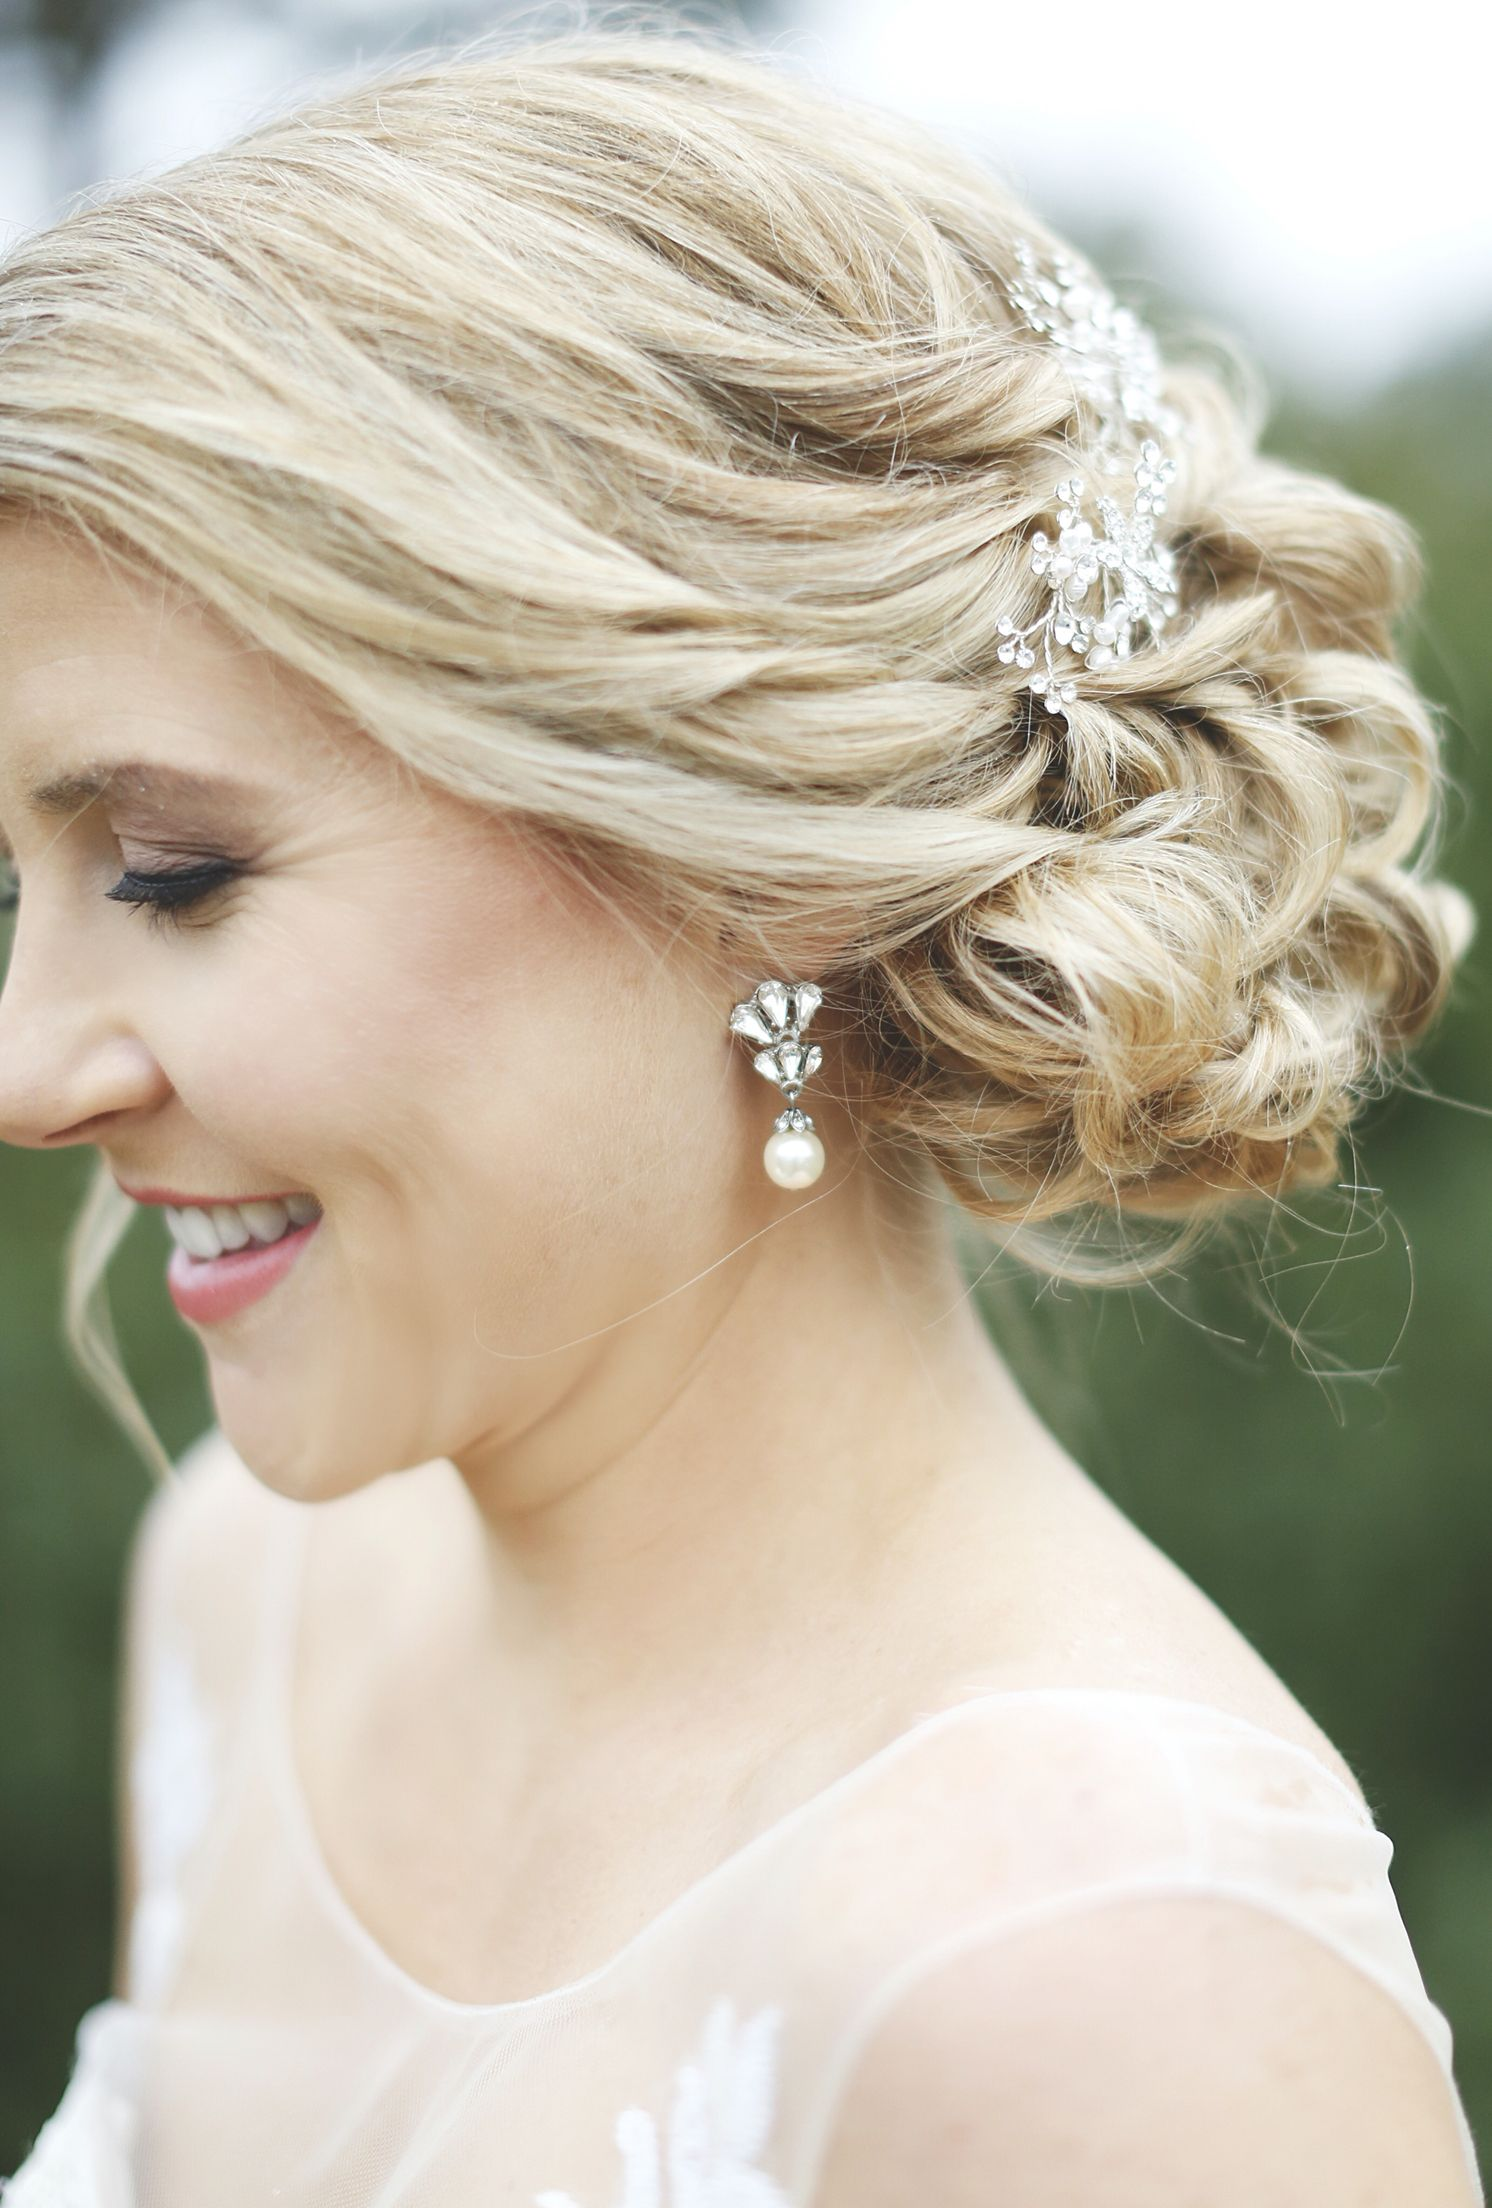 Wedding Hair And Makeup By Flair Style Lounge Austin Tx Wedding Hair And Makeup Hair Makeup Wedding Hairstyles